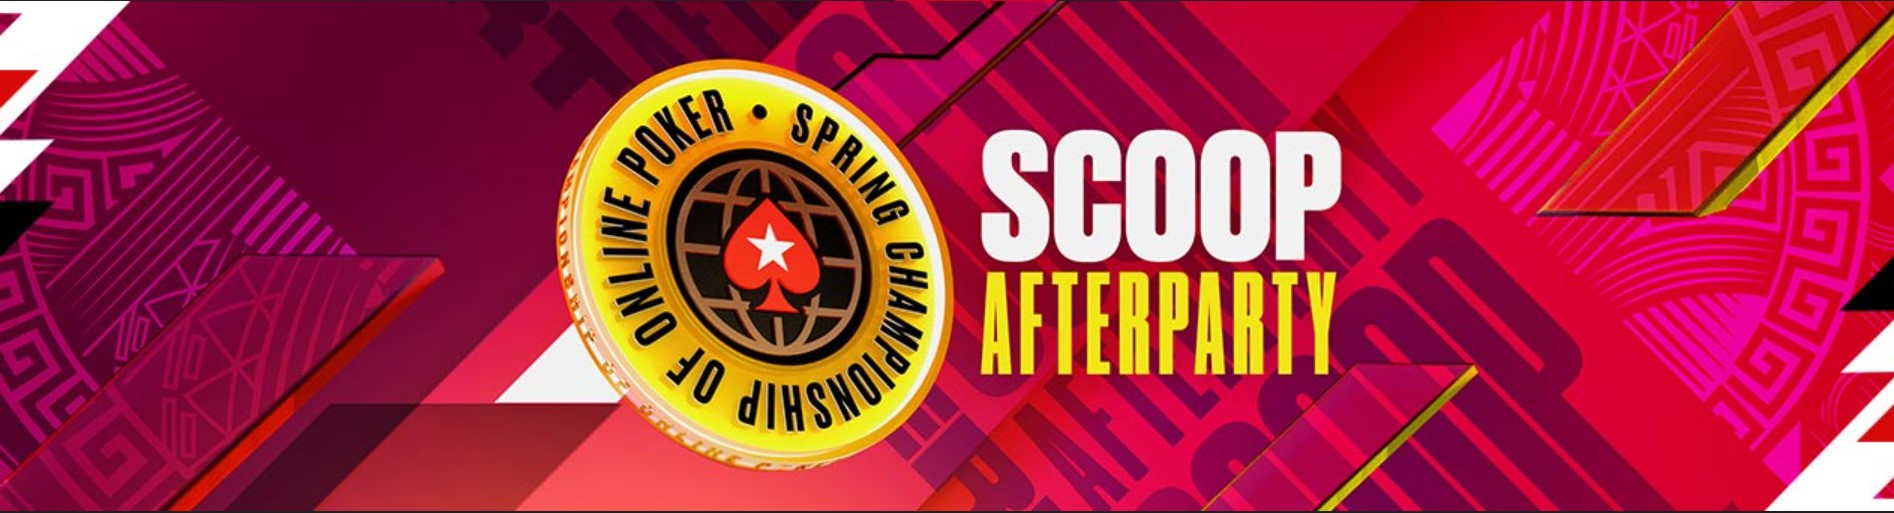 SCOOP Afterparty